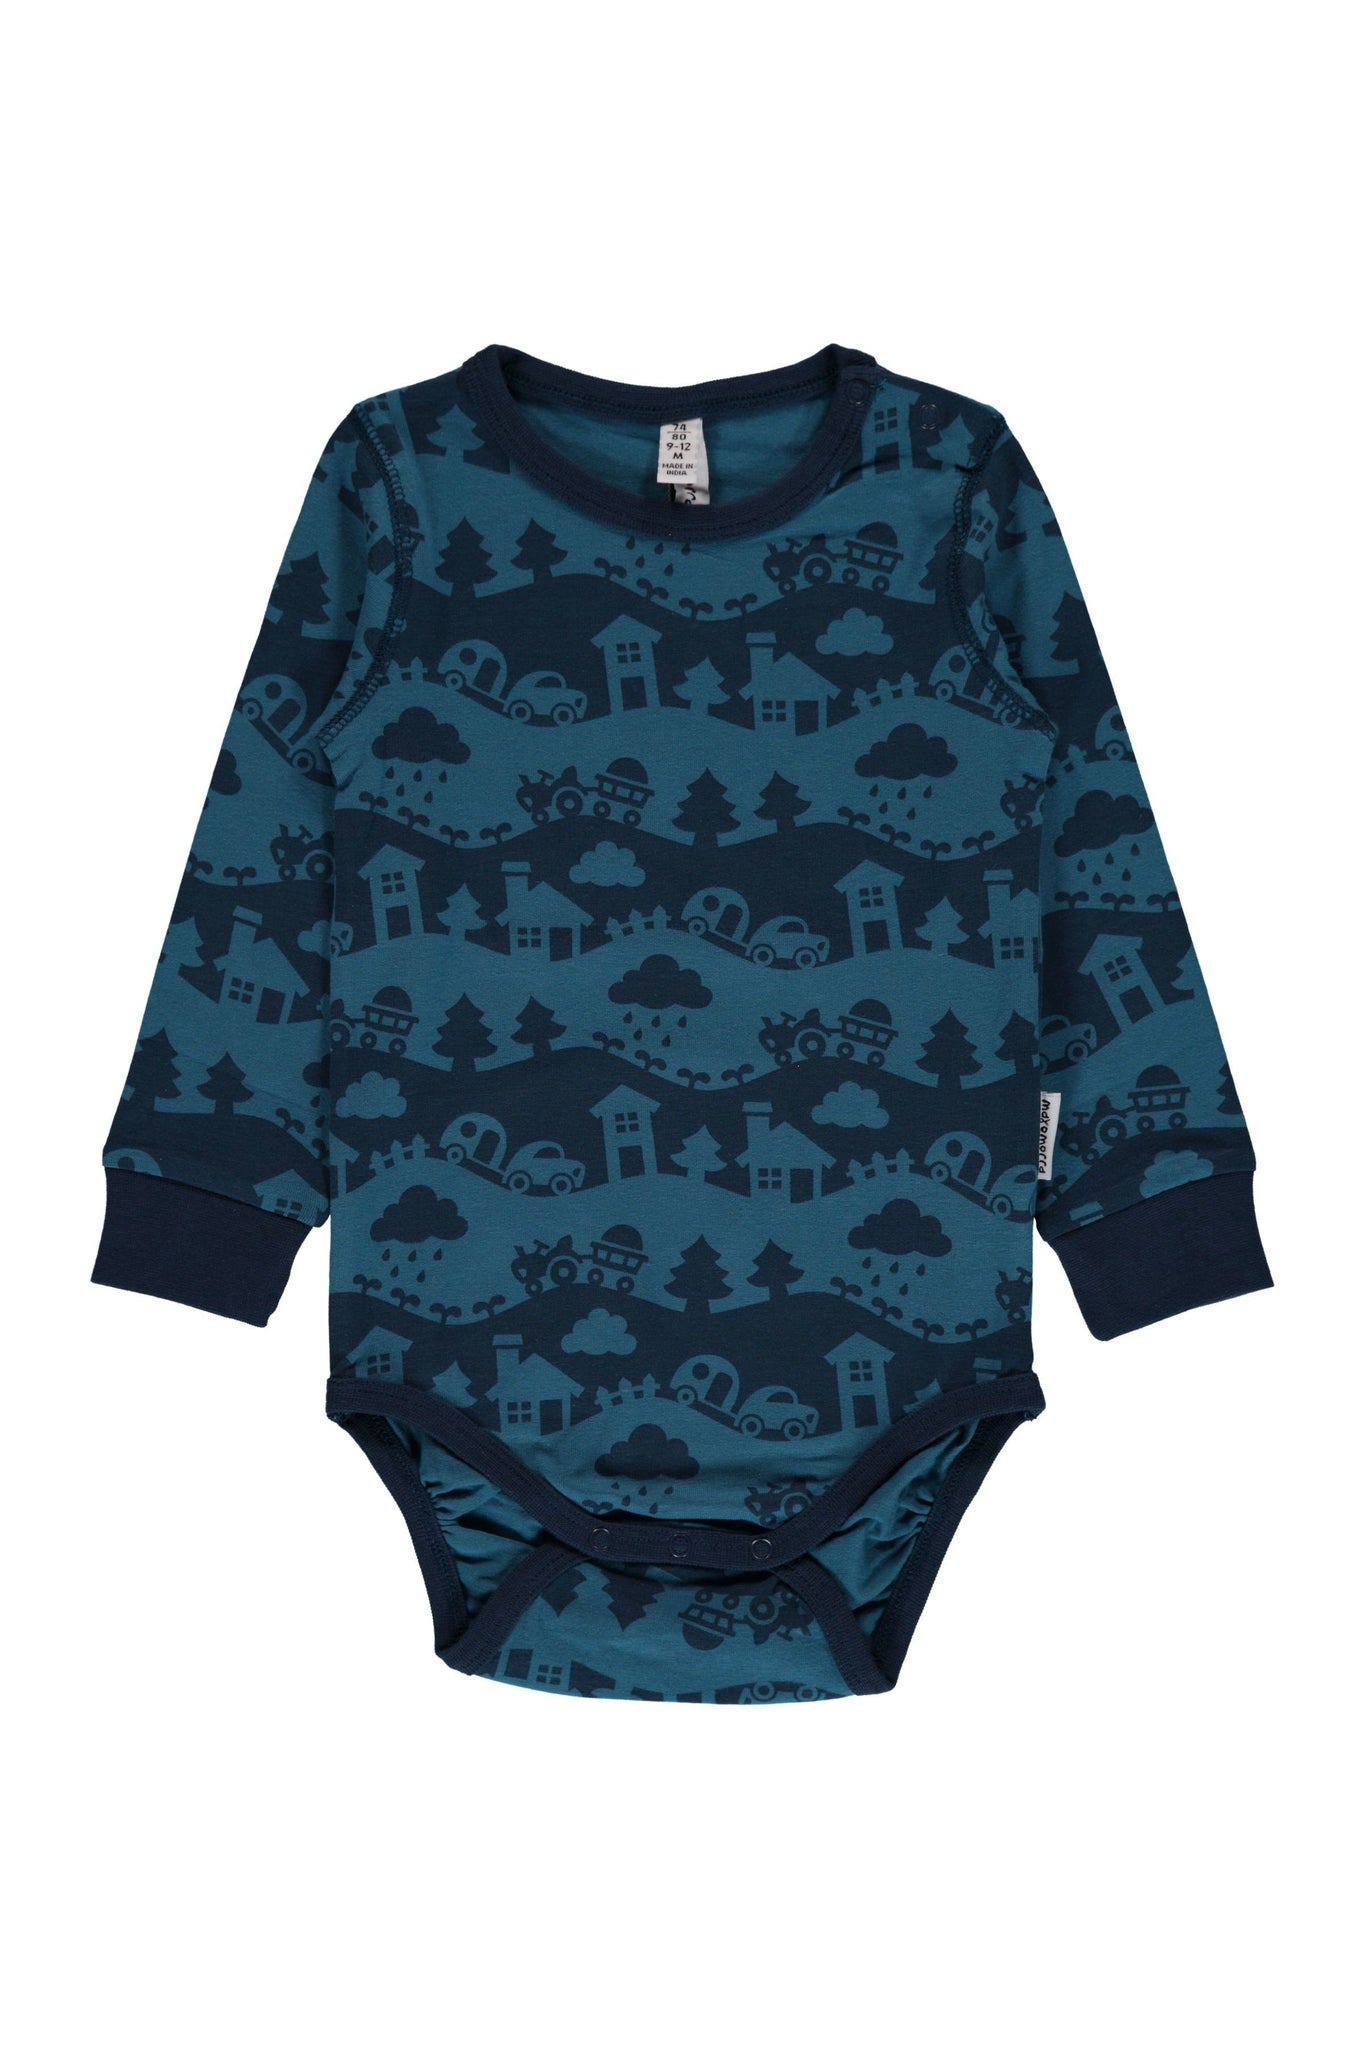 Blue - Landscape - Body - Long - Sleeve - Maxomorra Fashion - Snugglefox